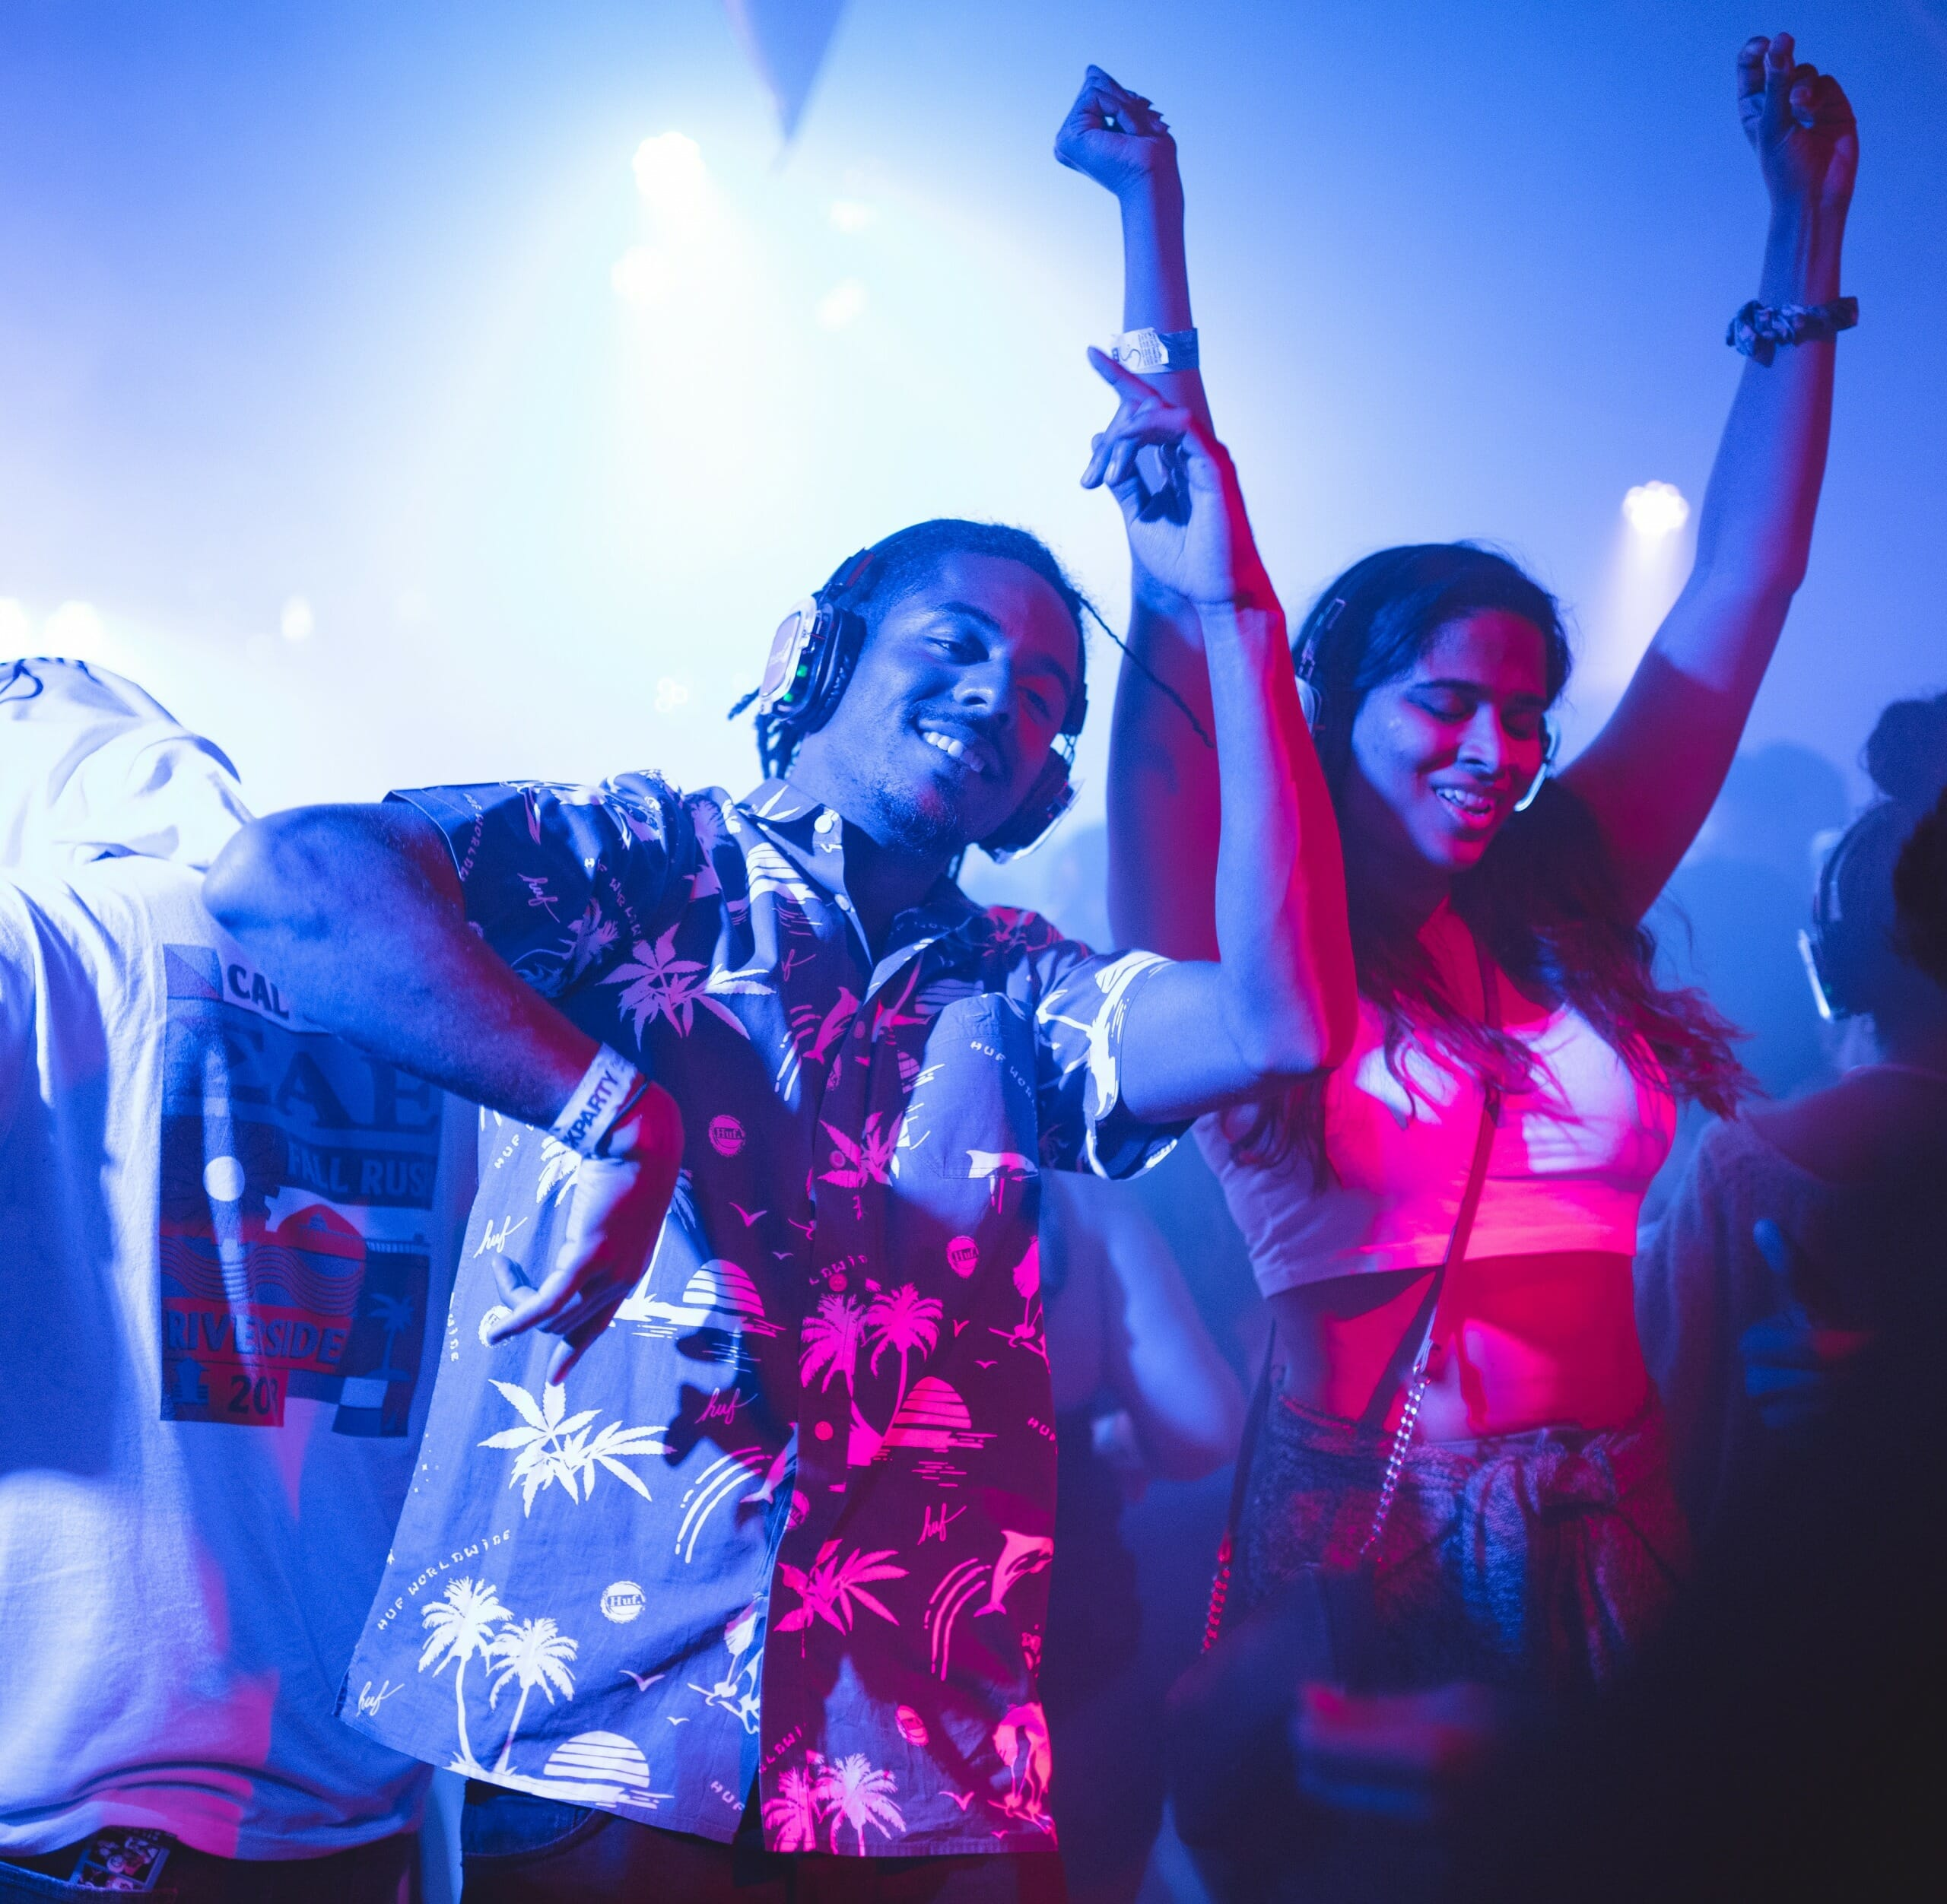 Party Started – DJ standing and dancing near smiling woman surrounded